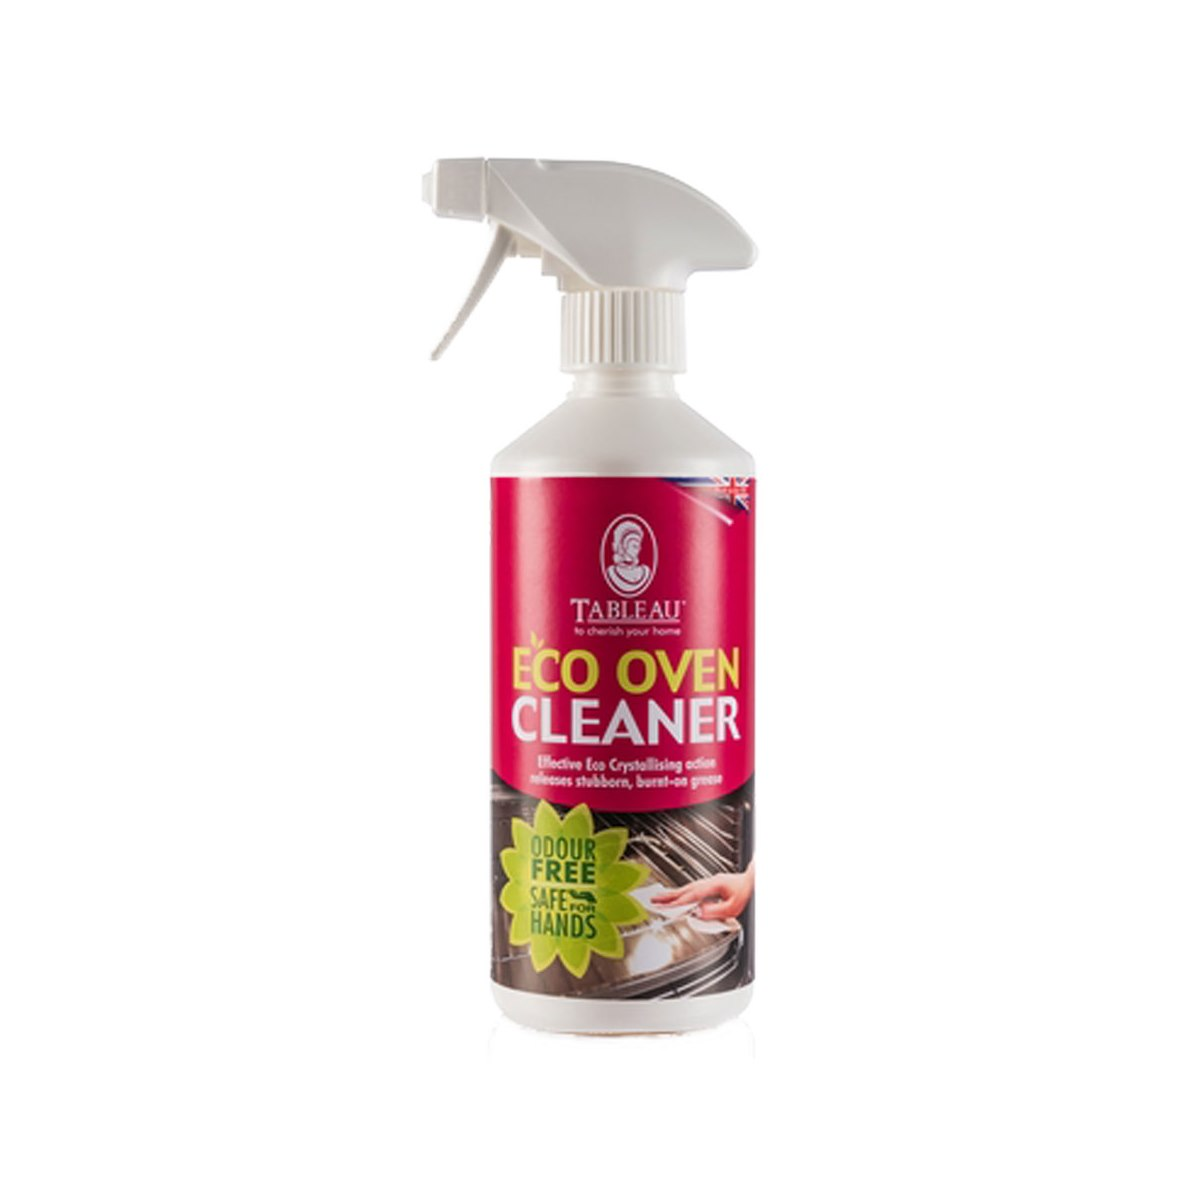 Tableau Eco Oven Cleaner Spray 500ml